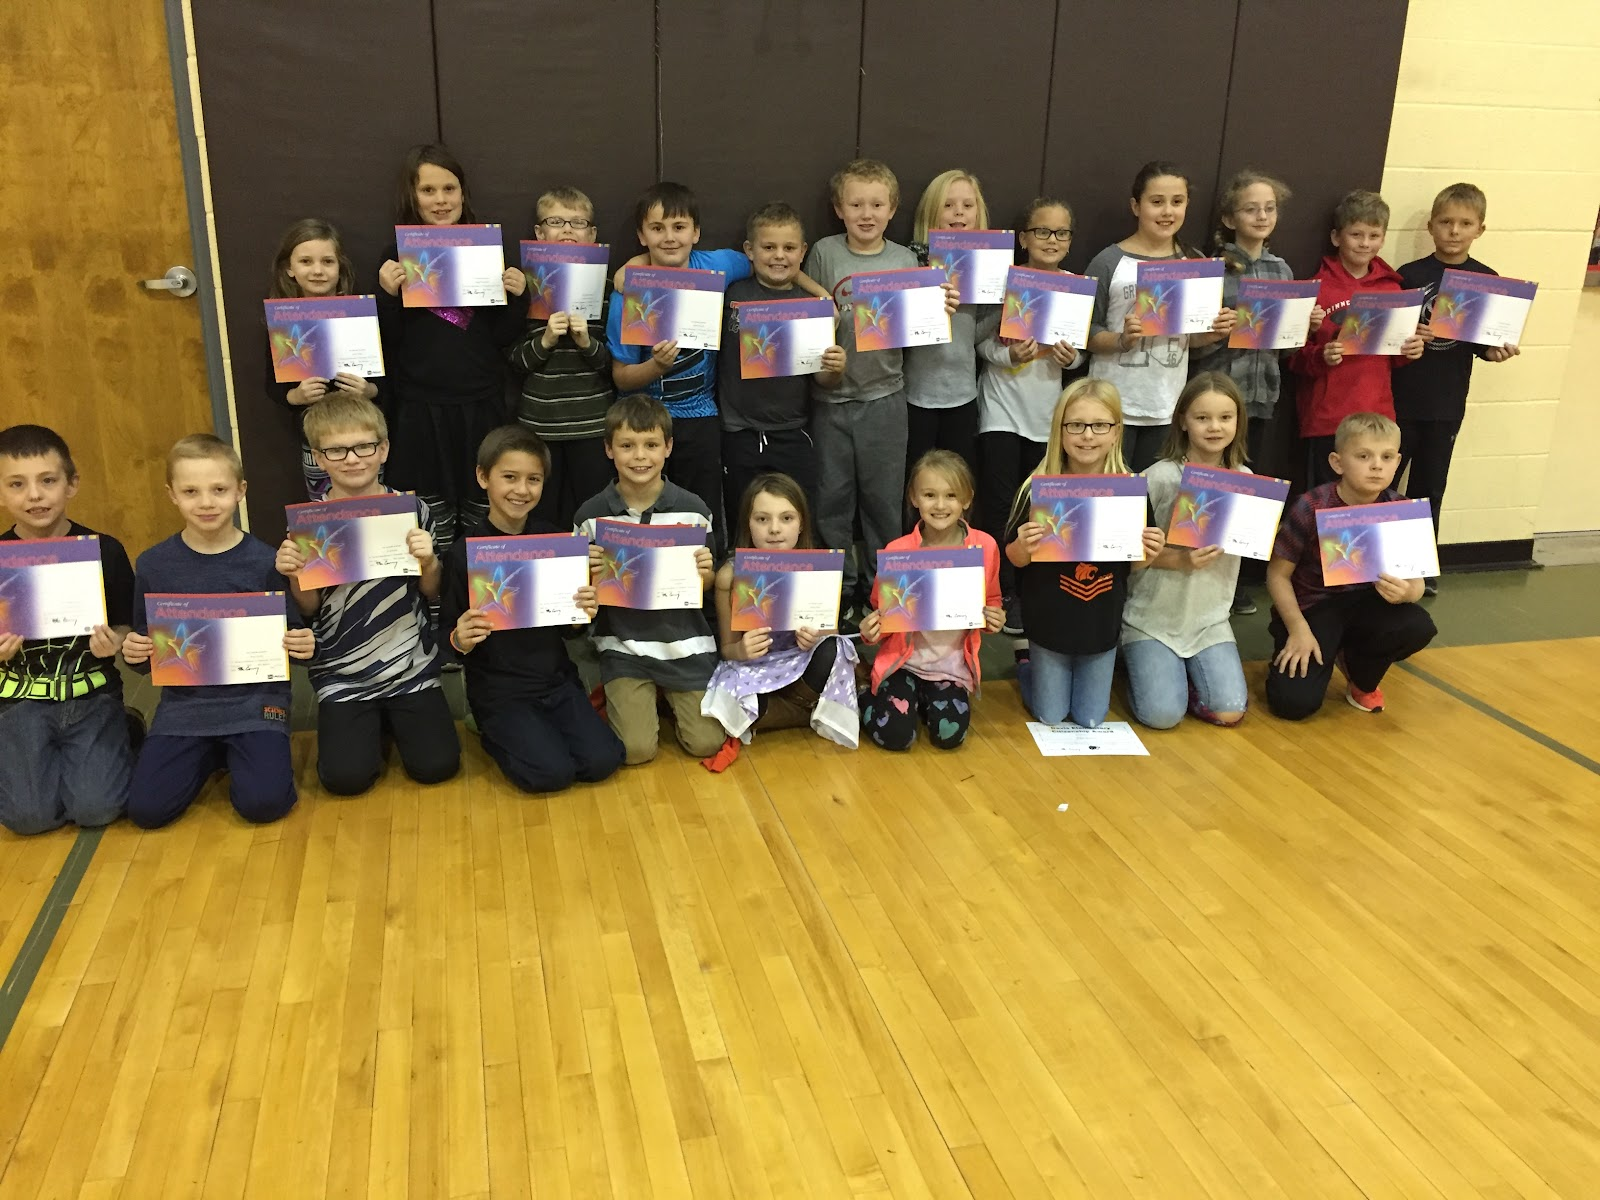 Students at Davis were also given awards for perfect attendance and outstanding attendance.